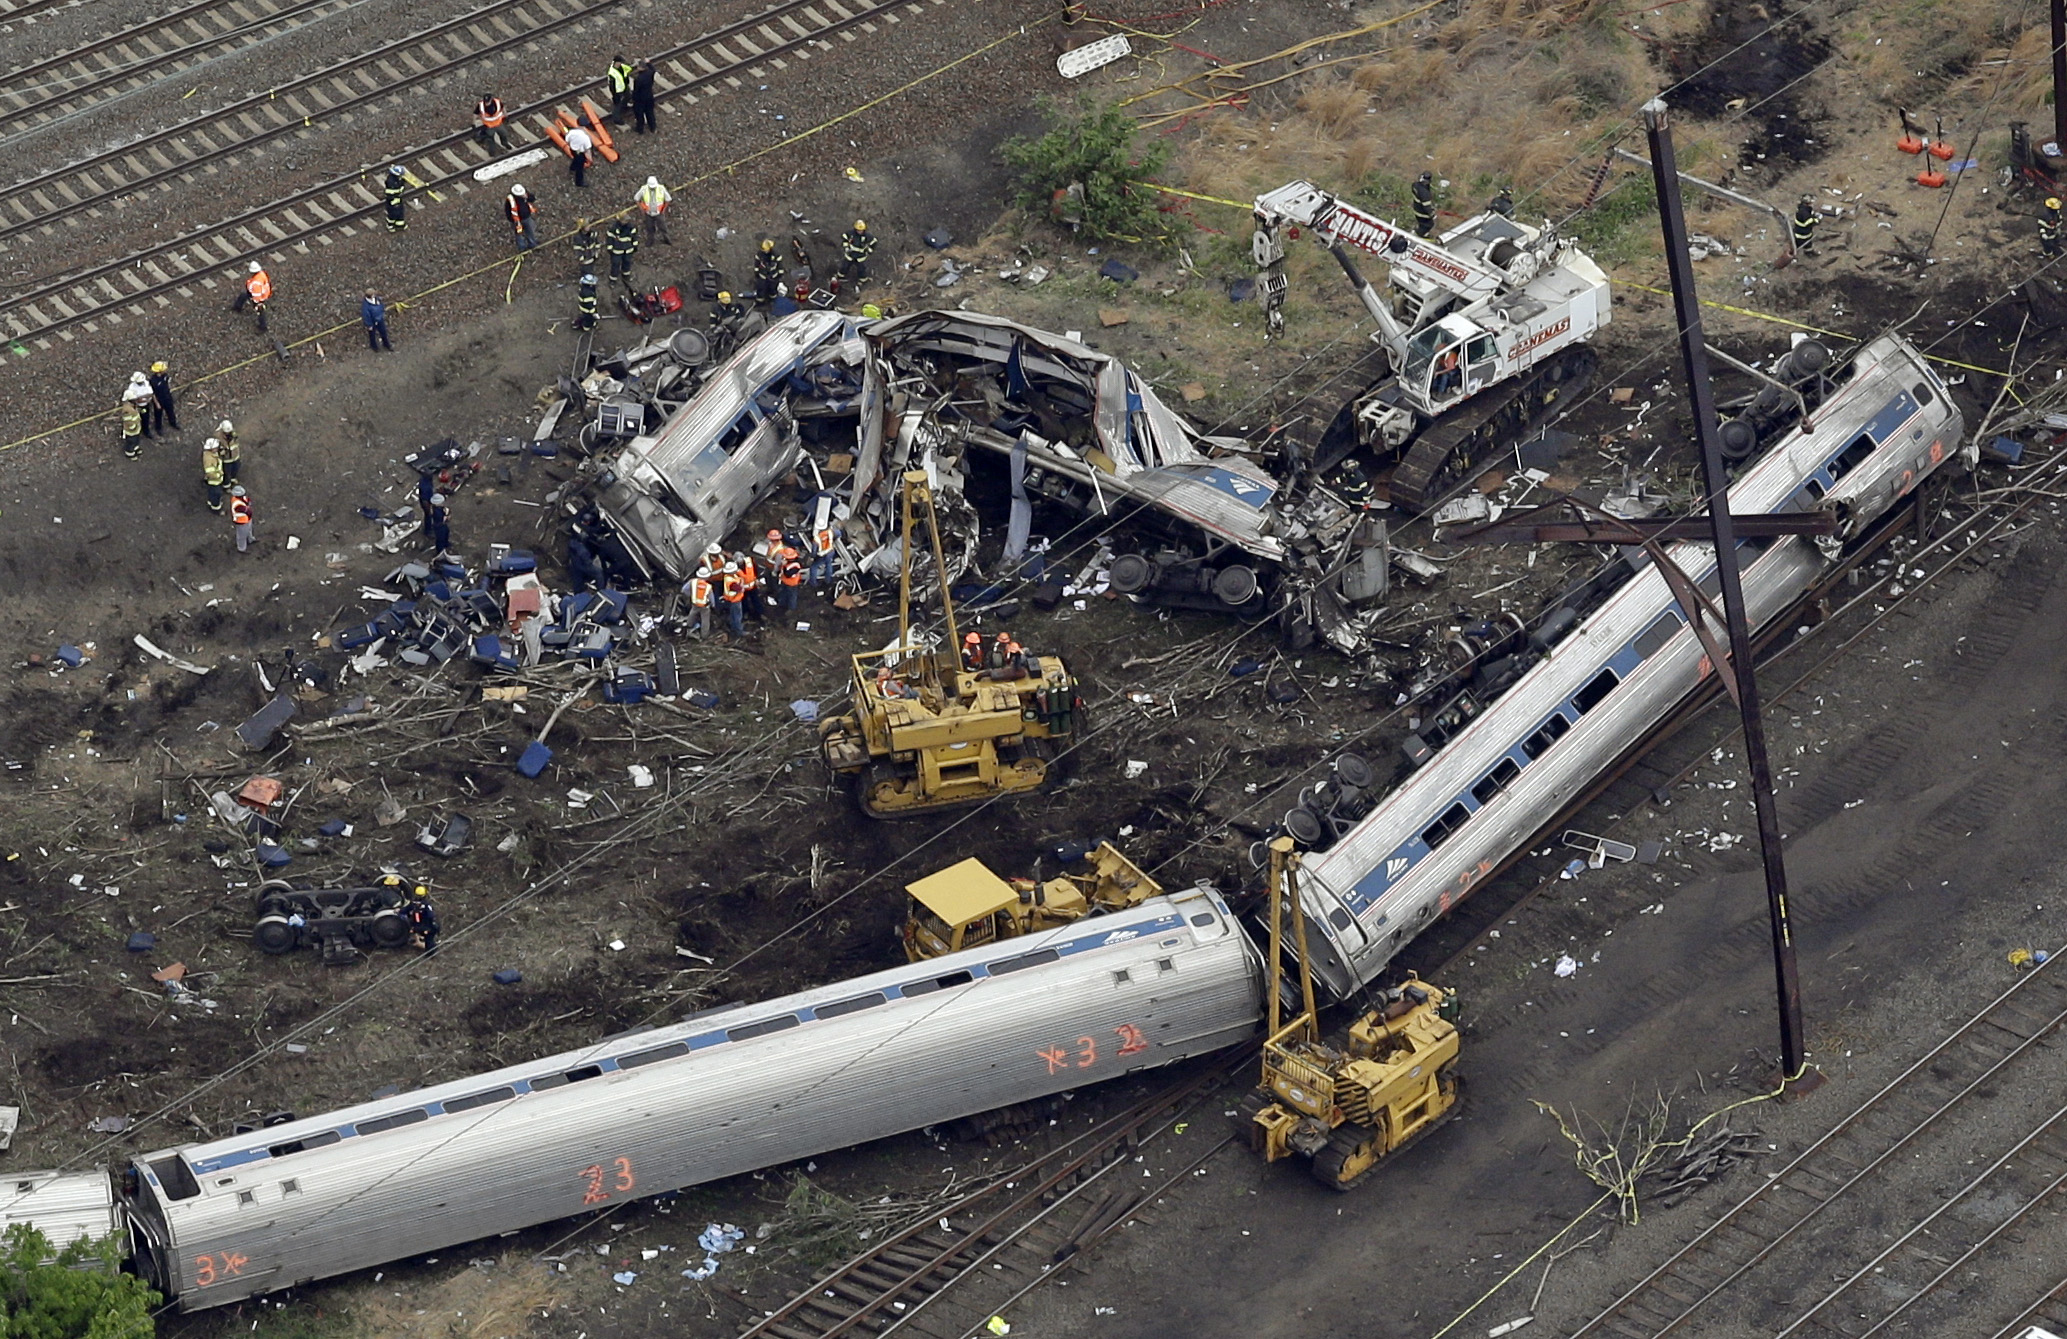 FILE – In this May 13, 2015, file photo, emergency personnel work near the wreckage of a New York City-bound Amtrak passenger train following a derailment that killed eight people and injured about 200 others in Philadelphia. The state's attorney general has a wide range of options in responding to a judge's order to arrest a speeding Amtrak engineer involved in a deadly 2015 crash, a law professor said Friday, May 12, 2017. (AP Photo/Patrick Semansky, File)